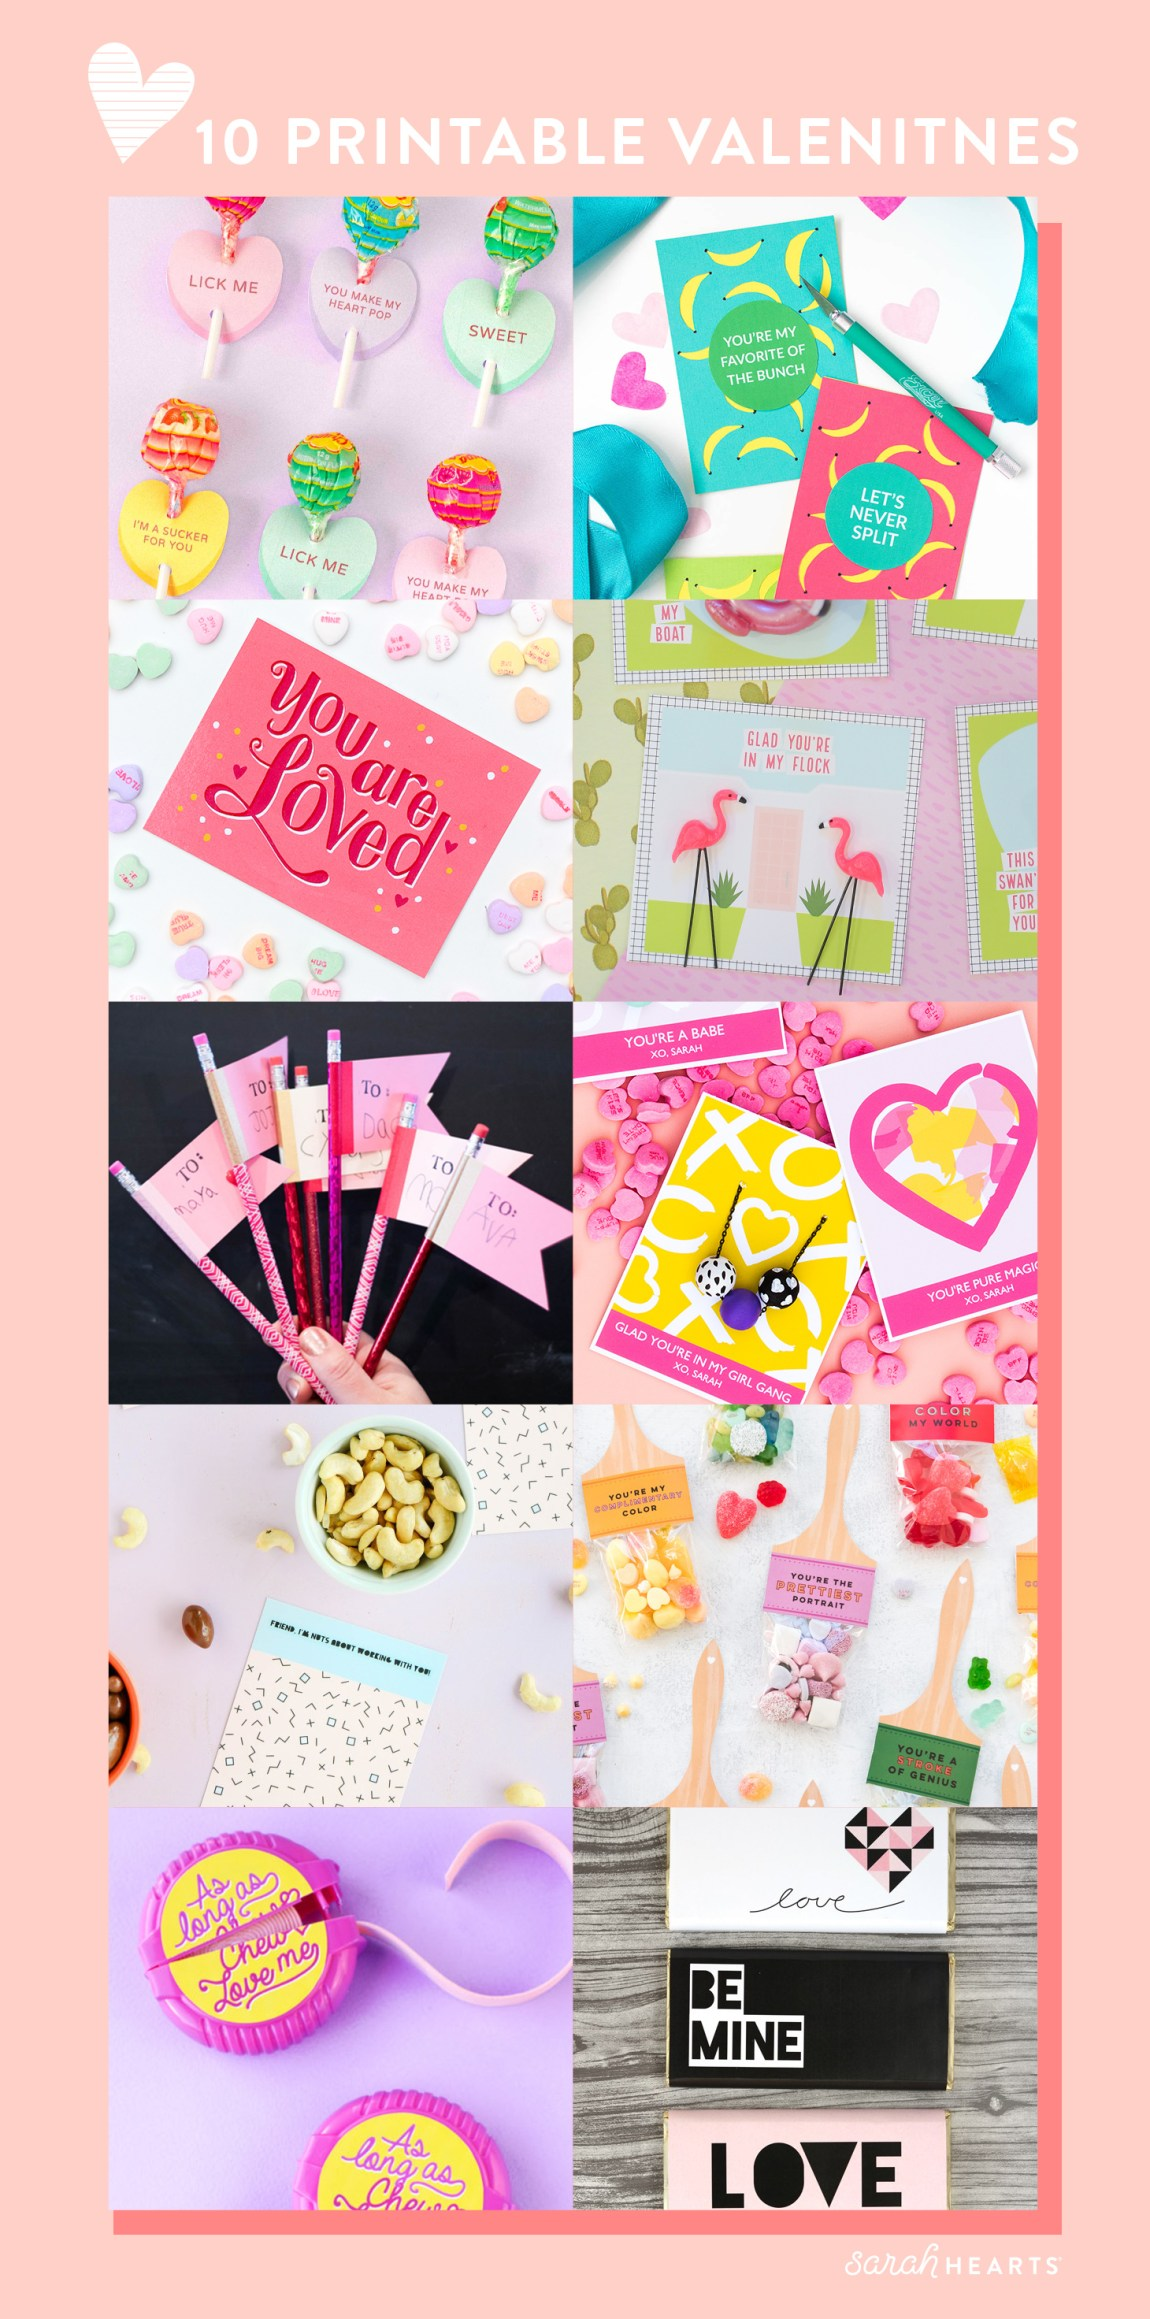 10 Best Free Printable Valentine S Day Cards Sarah Hearts